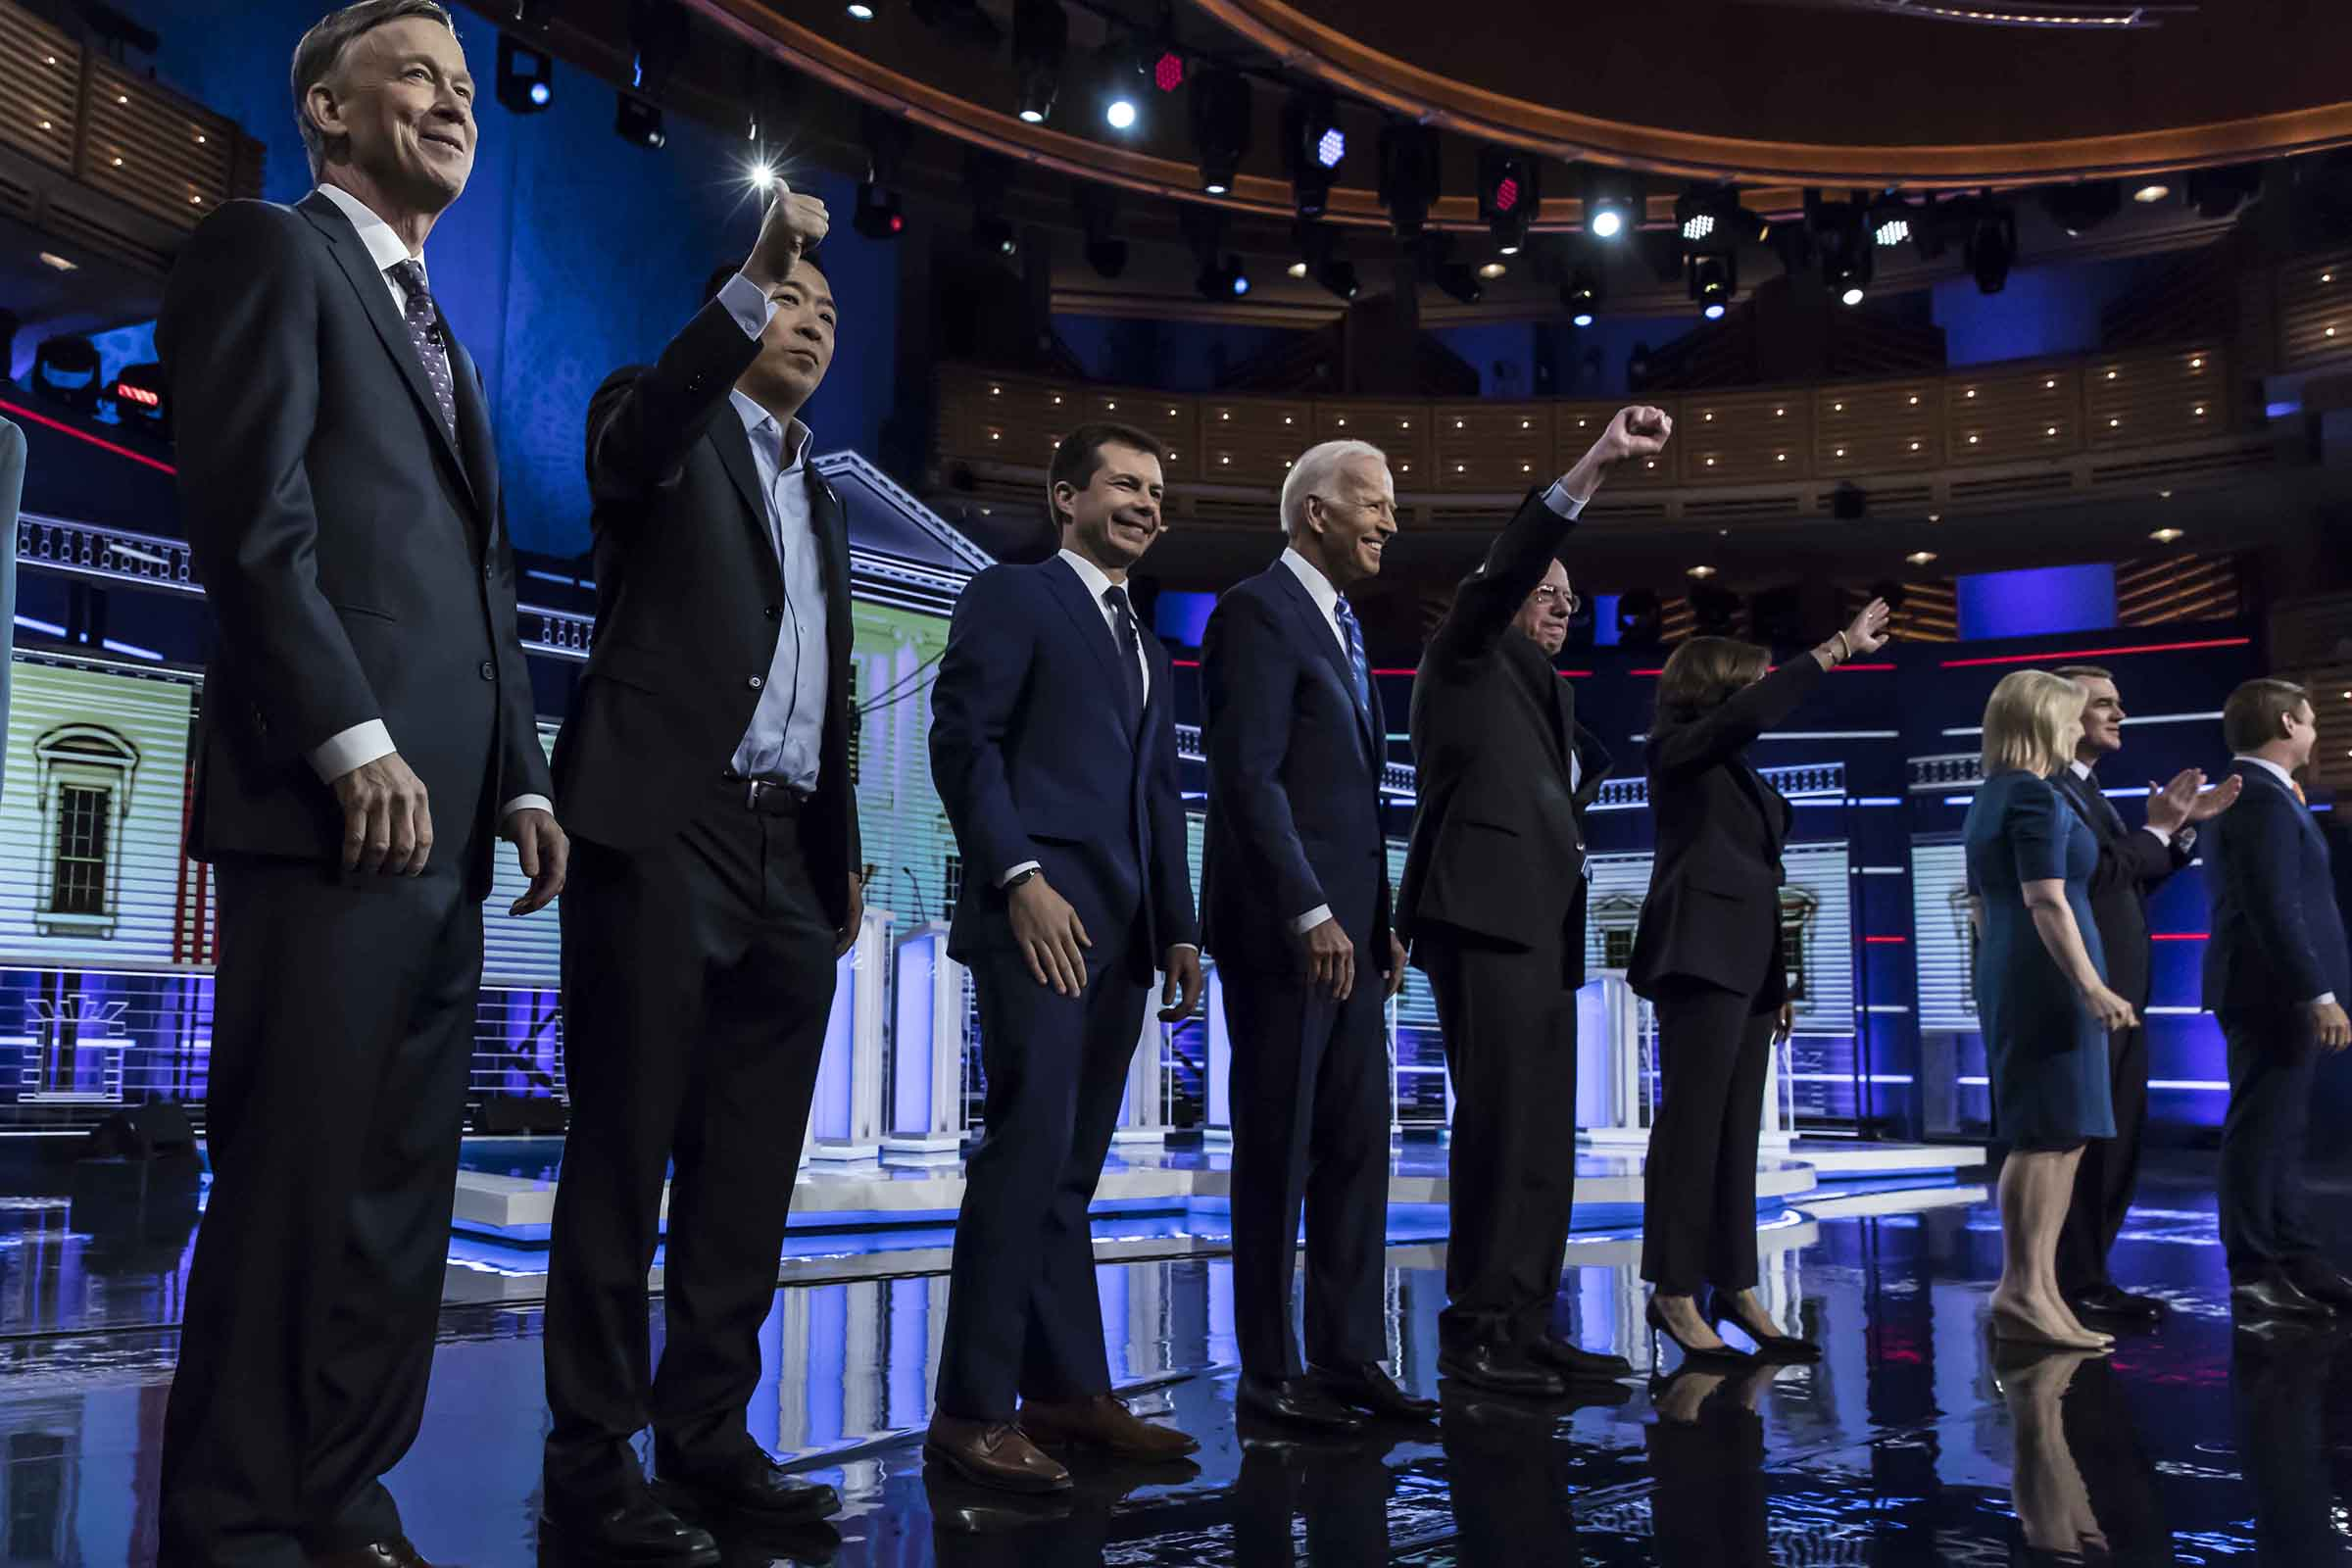 Democratic presidential hopefuls take the stage in the second Democratic primary debate of the 2020 presidential campaign season hosted by NBC News at the Adrienne Arsht Center for the Performing Arts in Miami, Florida, June 27, 2019.